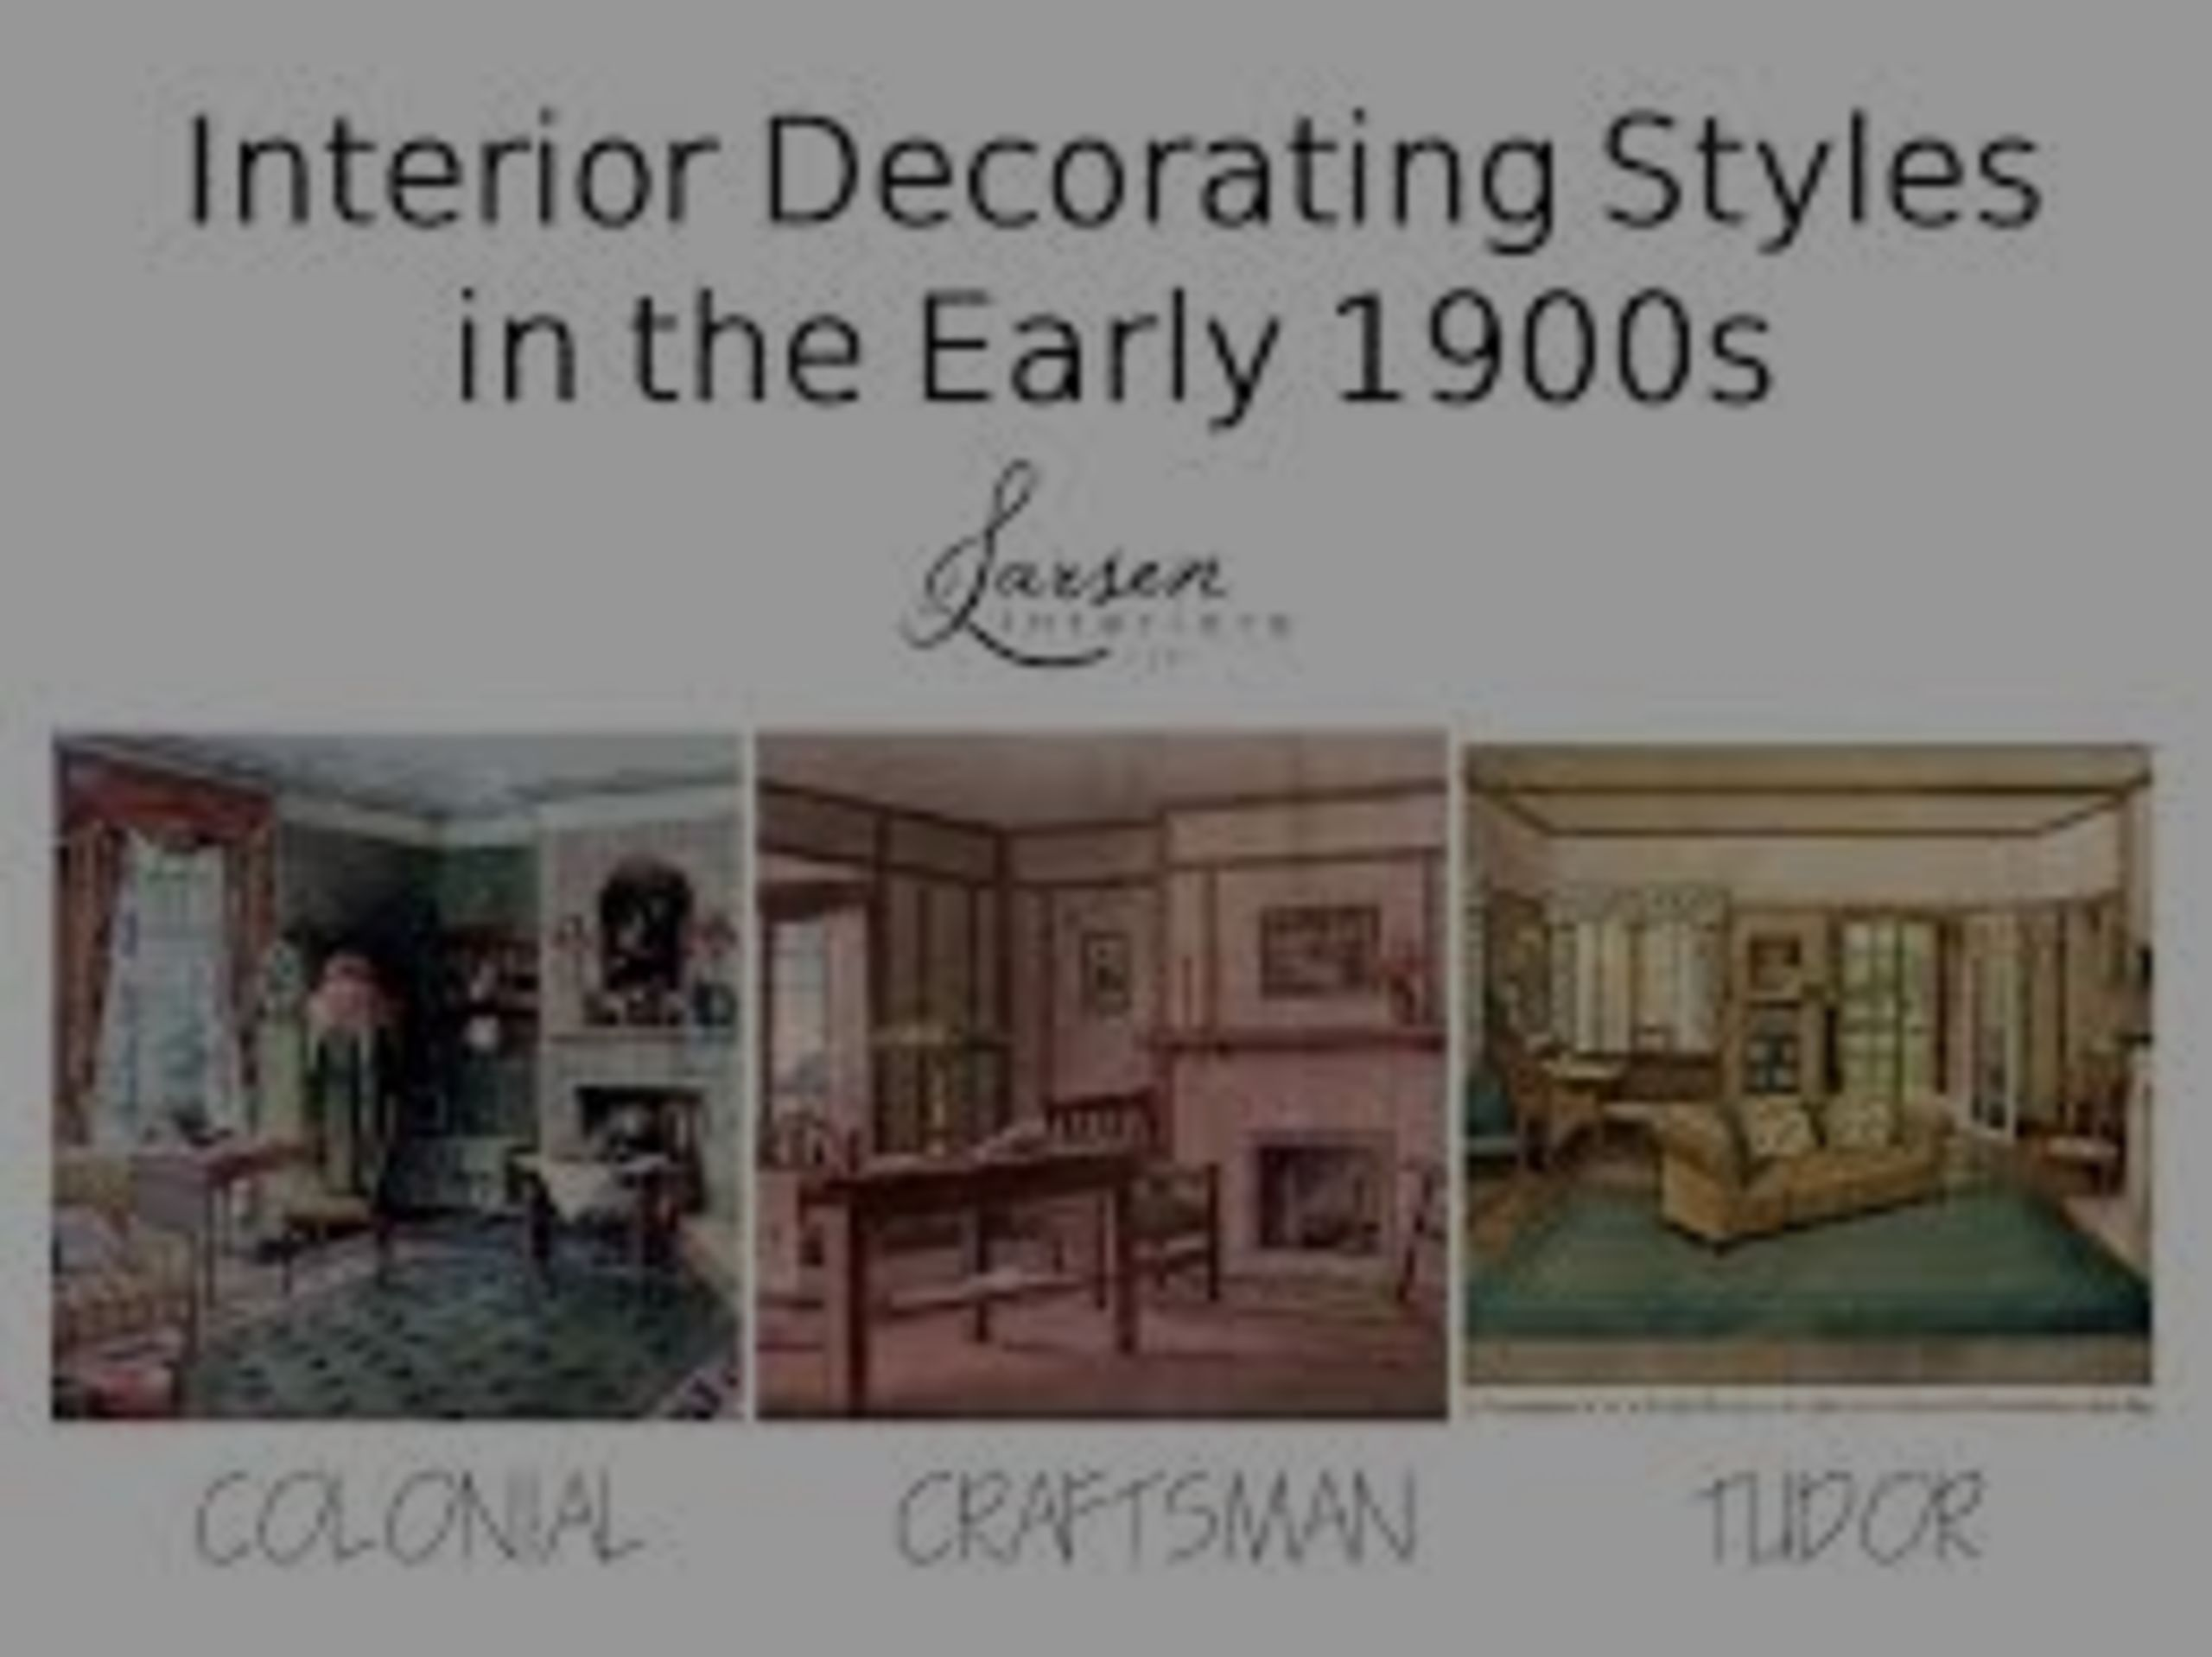 DESIGN THROUGH THE DECADES